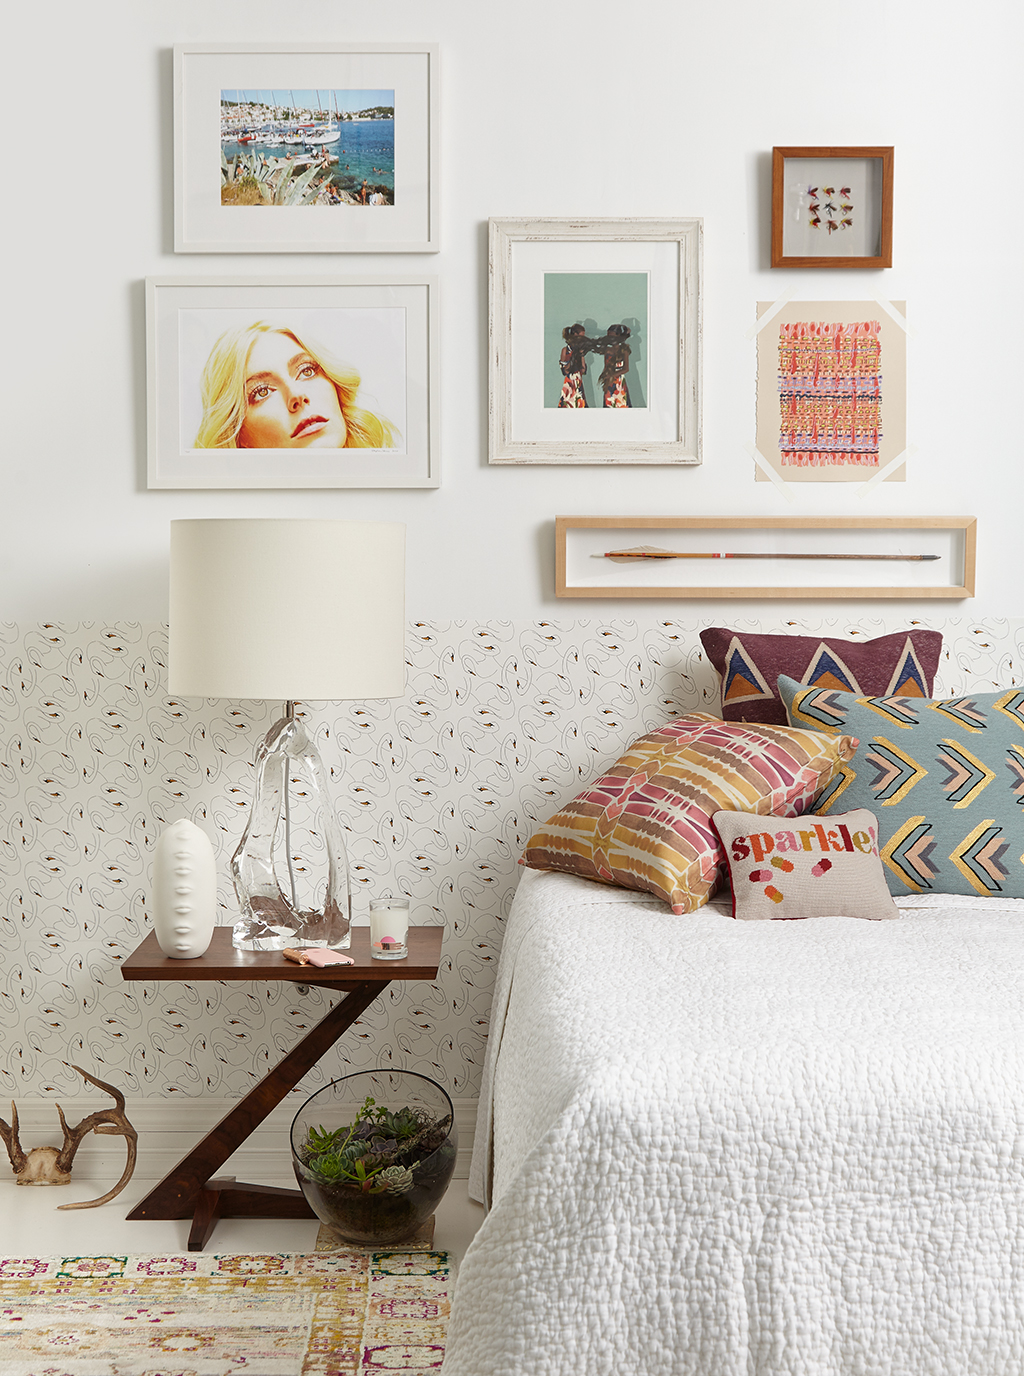 Inside our March 2016 issue: Up your bedroom's style game with fresh home decor tips. Photograph by Jeff Elkins.